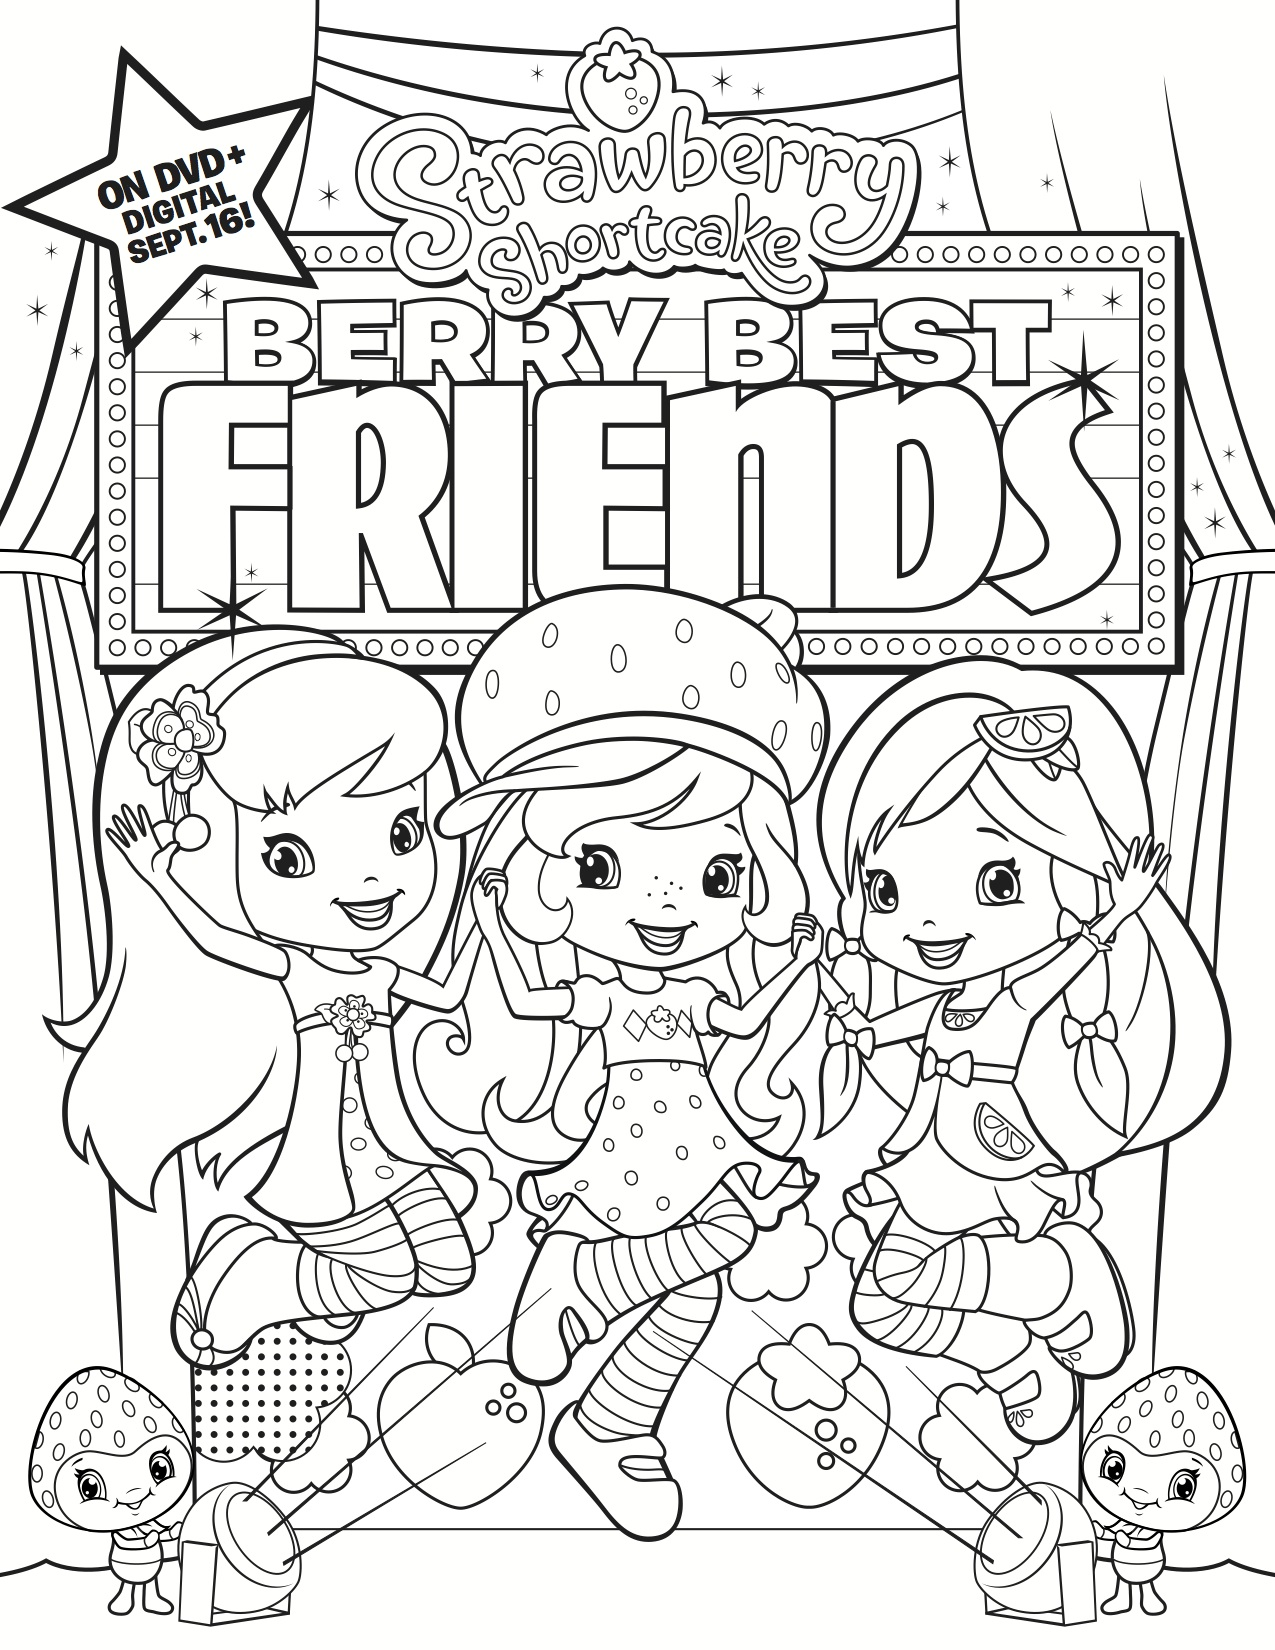 shopkin doll coloring pages - photo#30